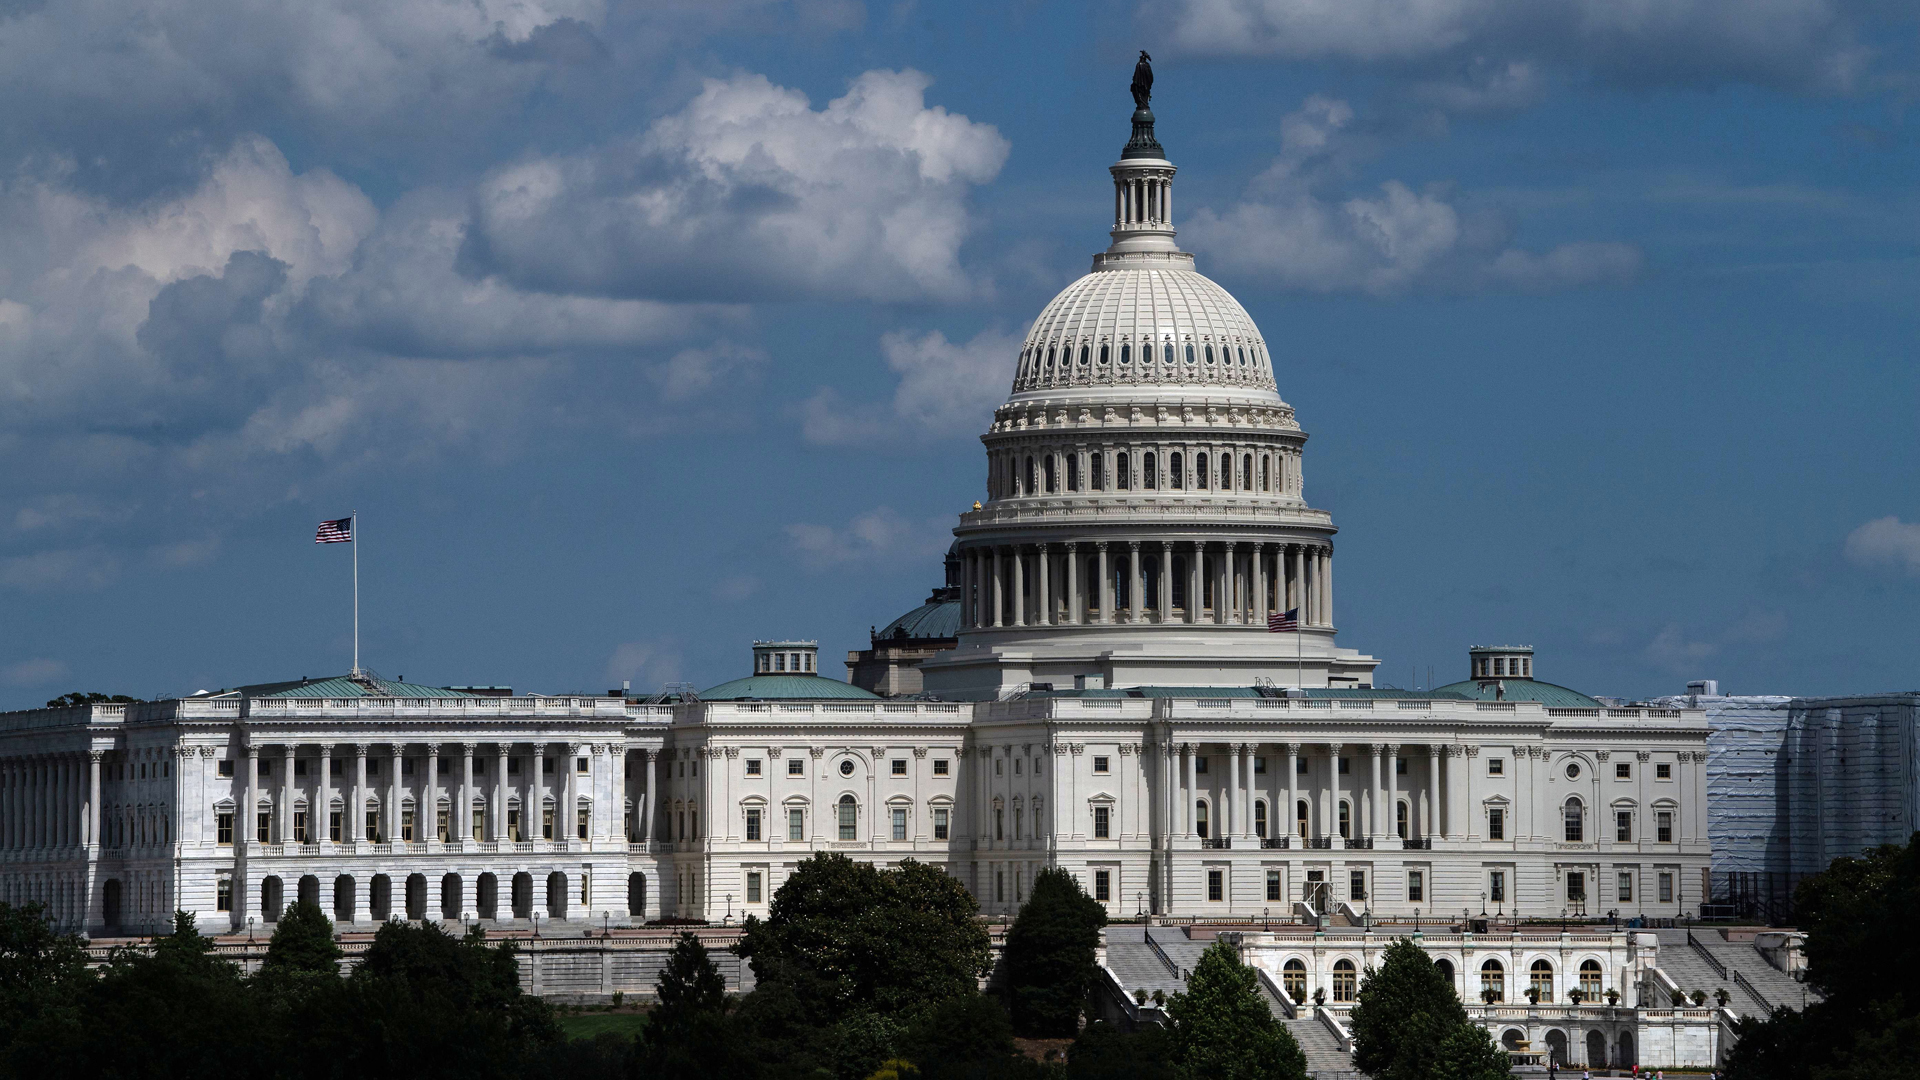 View of the U.S. Capitol in Washington, DC, on June 20, 2019. (Credit: NICHOLAS KAMM/AFP/Getty Images)